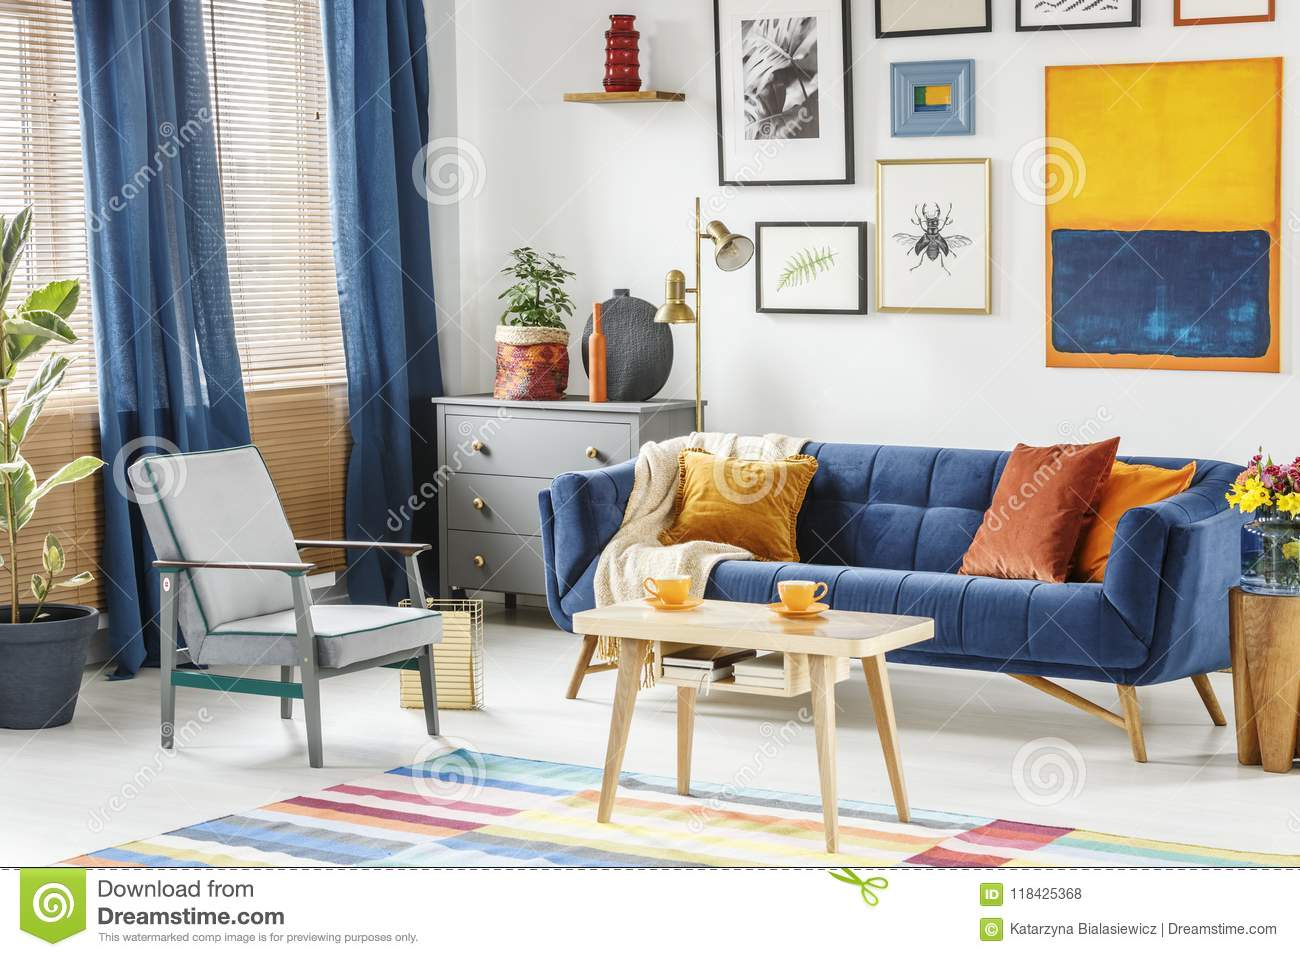 bright sofa gray accent colors and cozy living room interior with blue drapes a wi